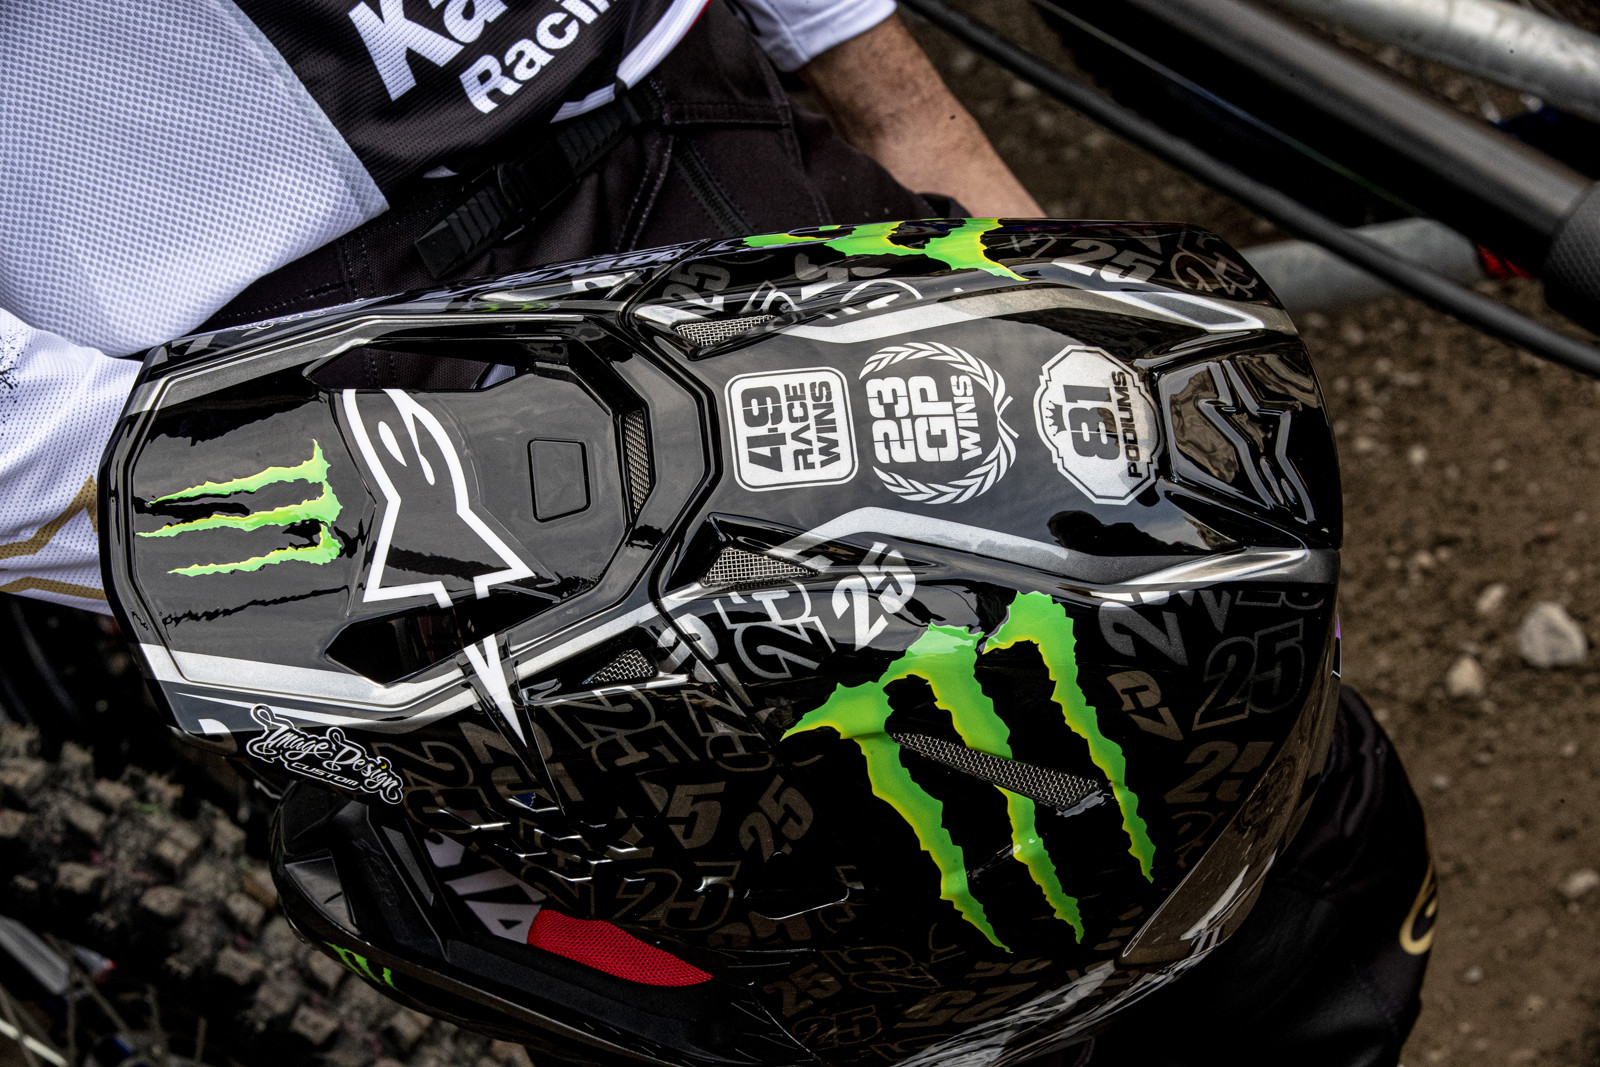 Such a cool lid and impressive stats for the MX Panda.